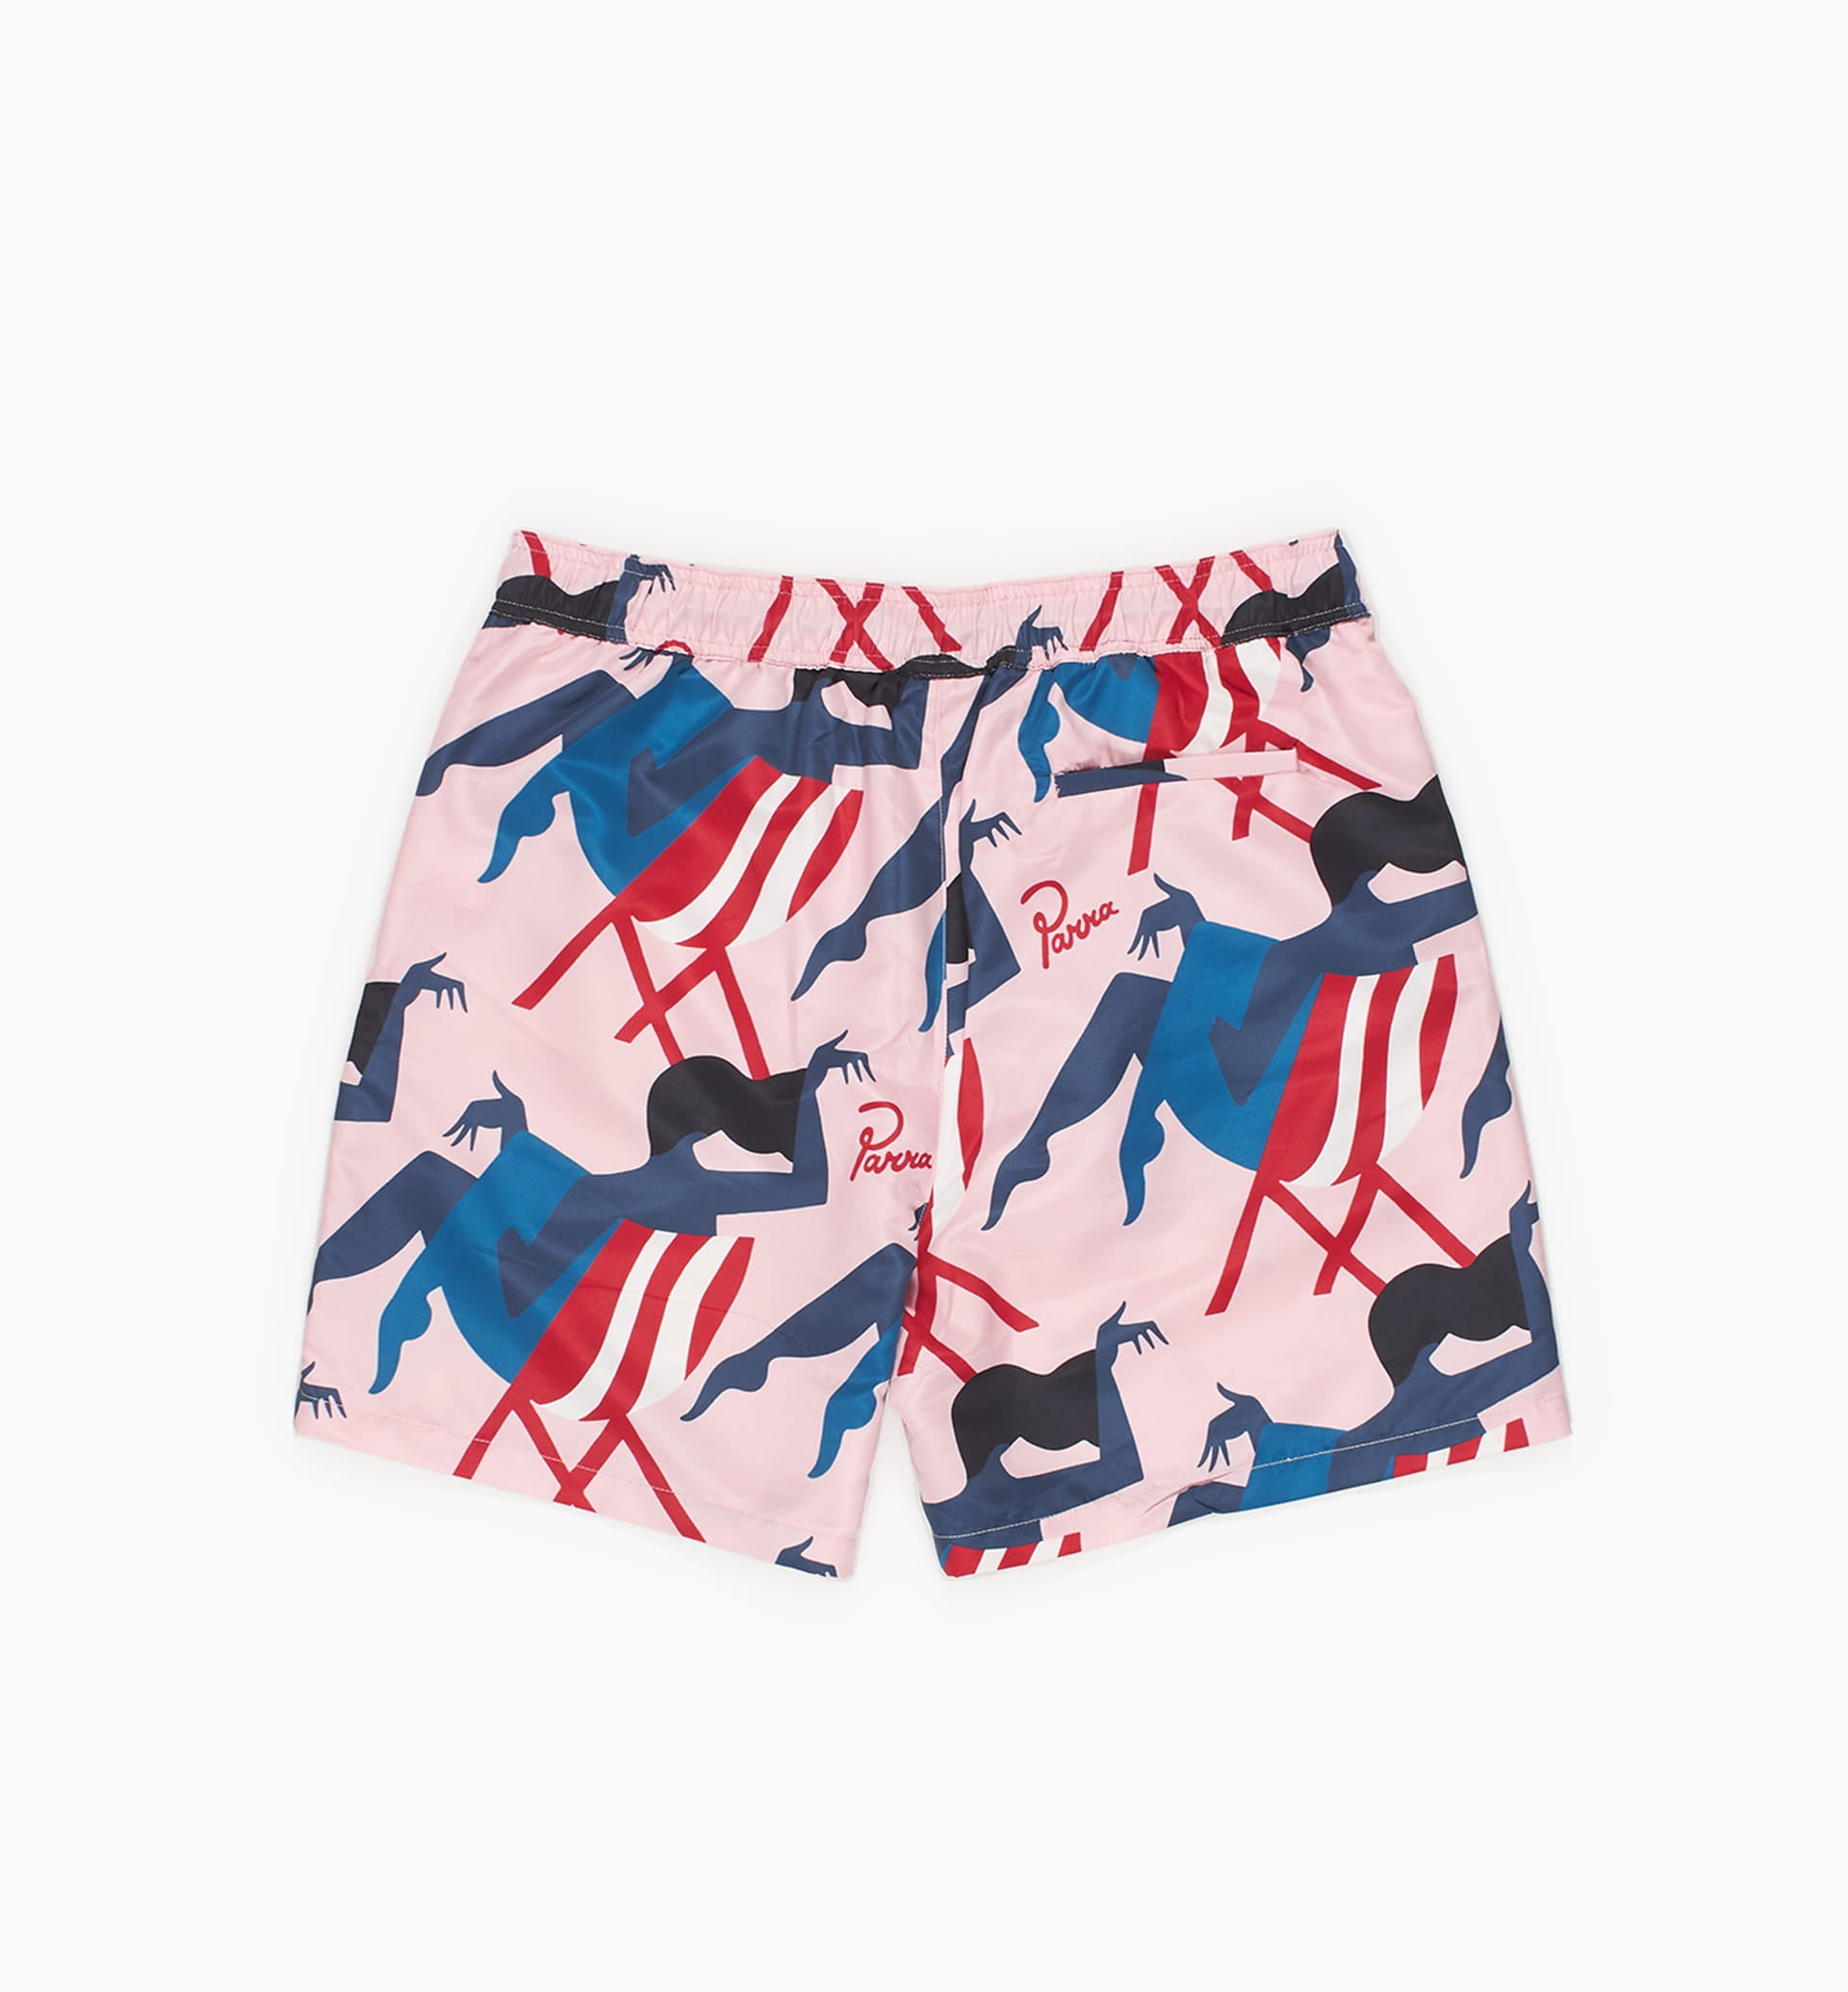 Parra - madame beach swim shorts